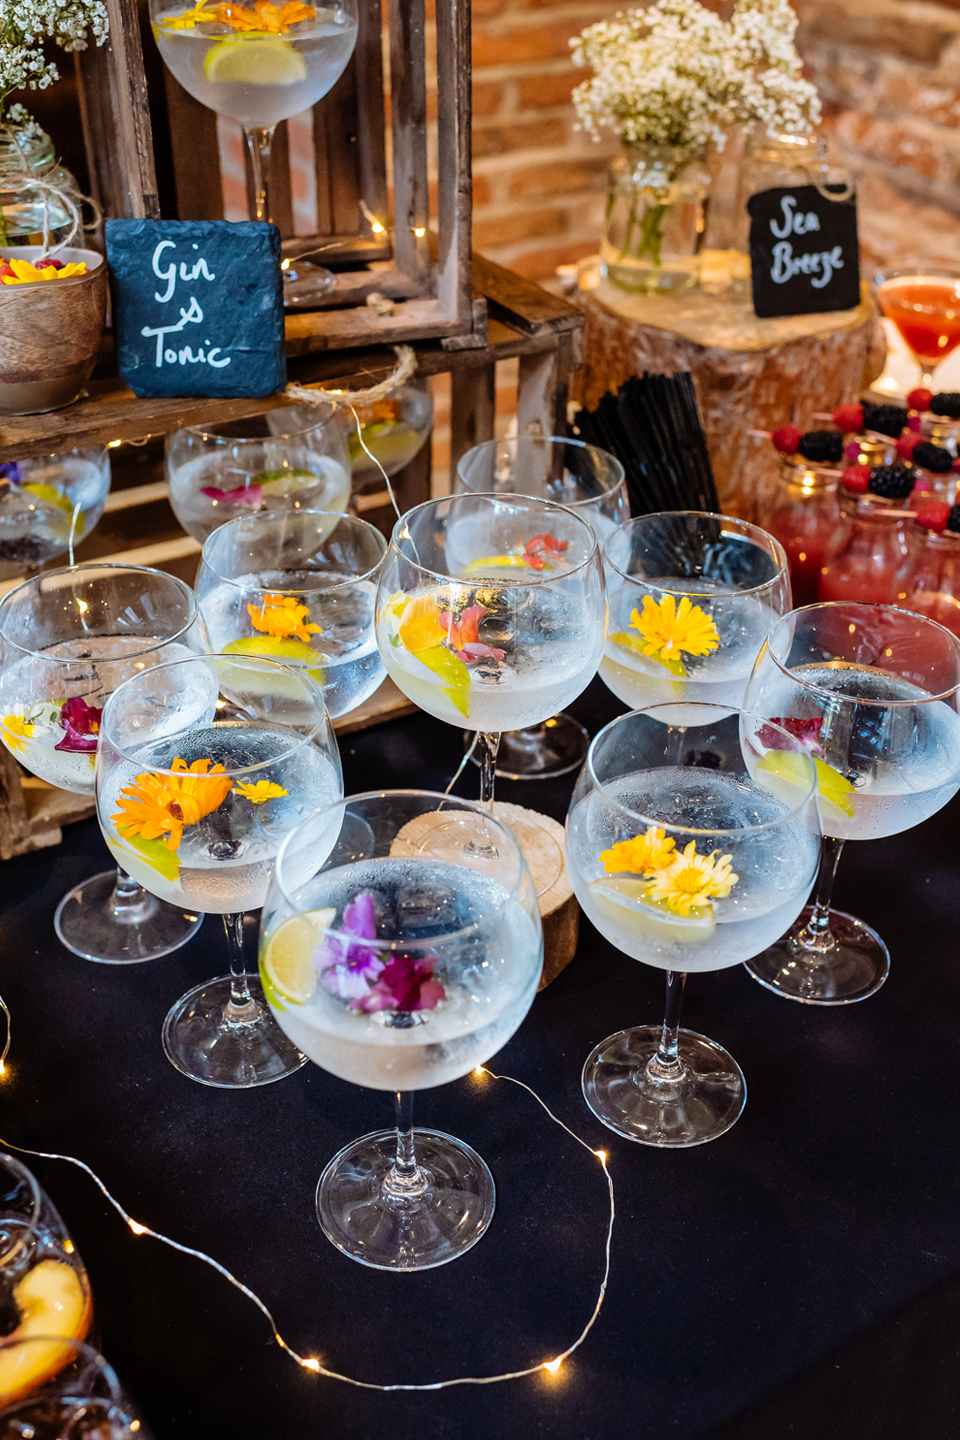 A selection of gin and tonics are served with pretty flowers for a wedding reception at Bassmead Manor Barns